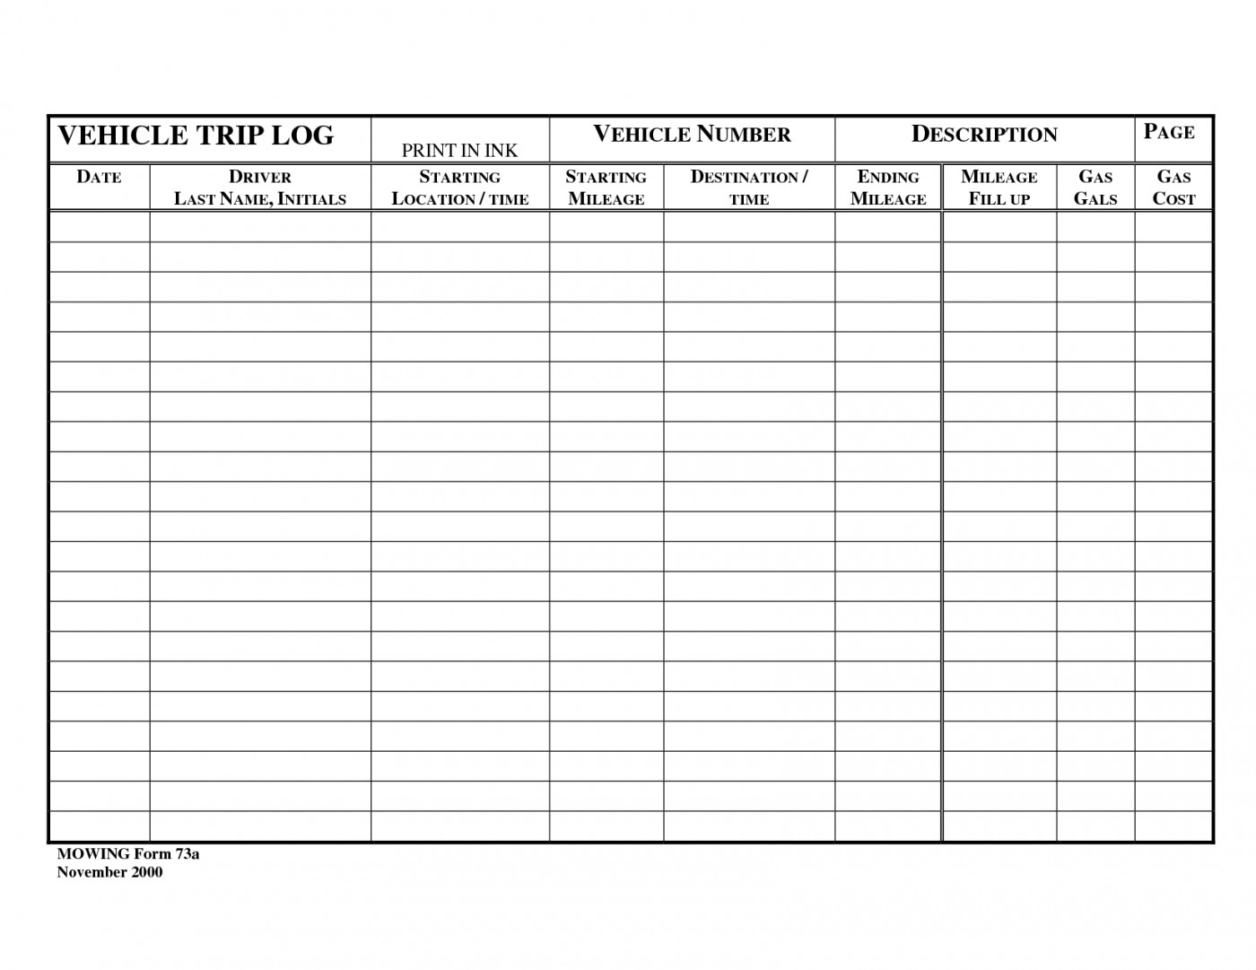 Wolf Requirements Spreadsheet Regarding 010 Vehicle Maintenance Schedule Spreadsheet Template ~ Ulyssesroom